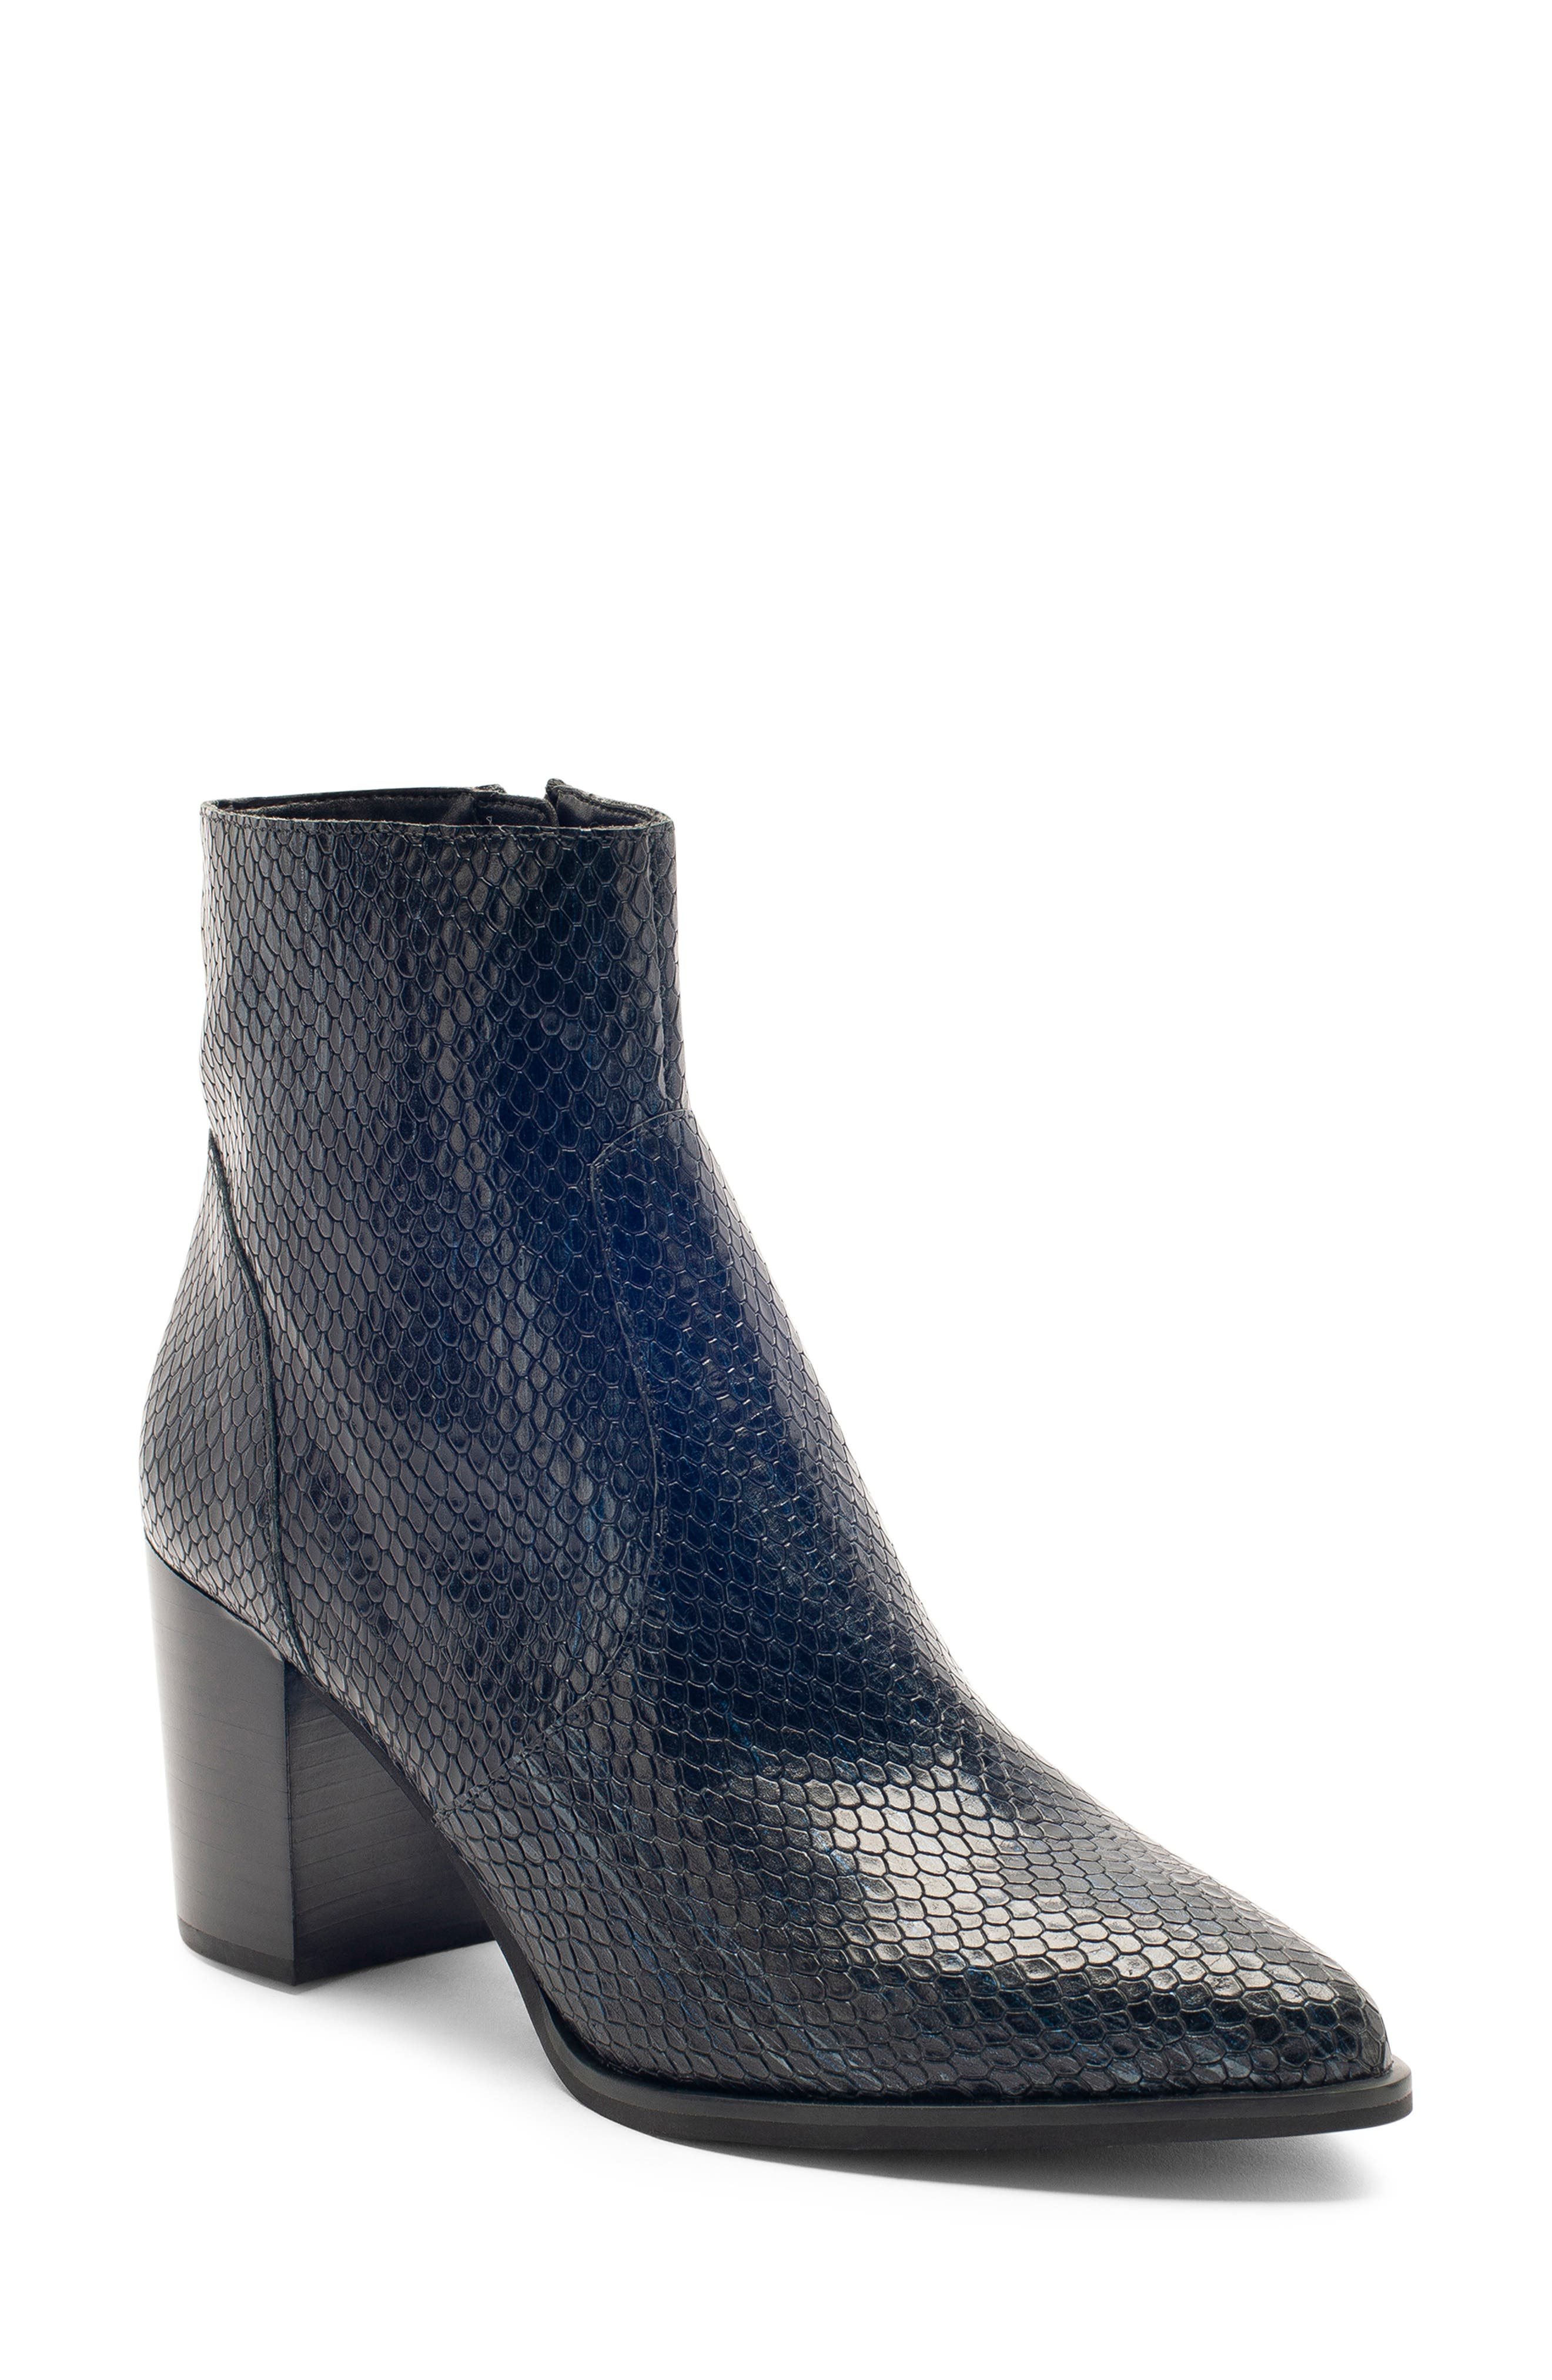 BLONDO Tania Waterproof Bootie, Main, color, BLACK SNAKE LEATHER